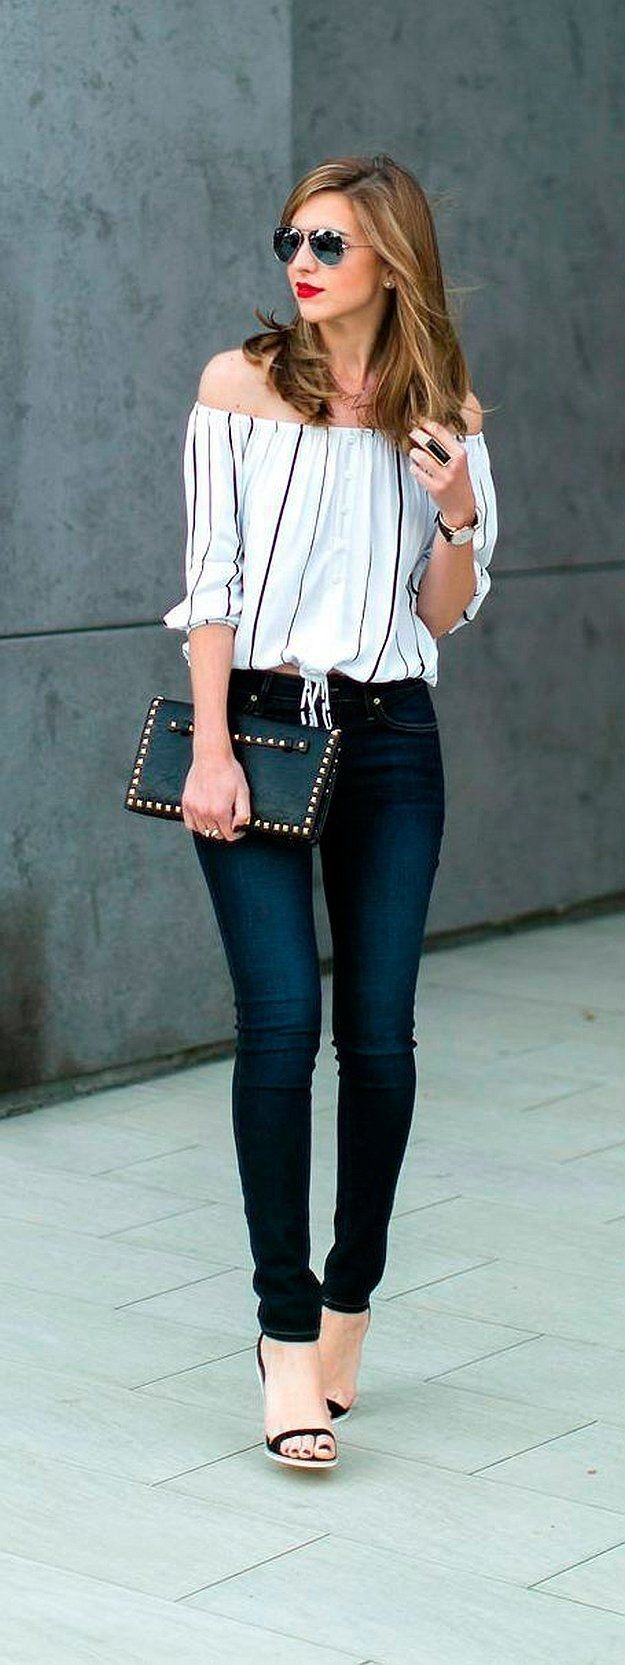 10 Cute Cute Outfit Ideas With Jeans with skinny jeans cute summer outfit ideas how to wear off the 2020